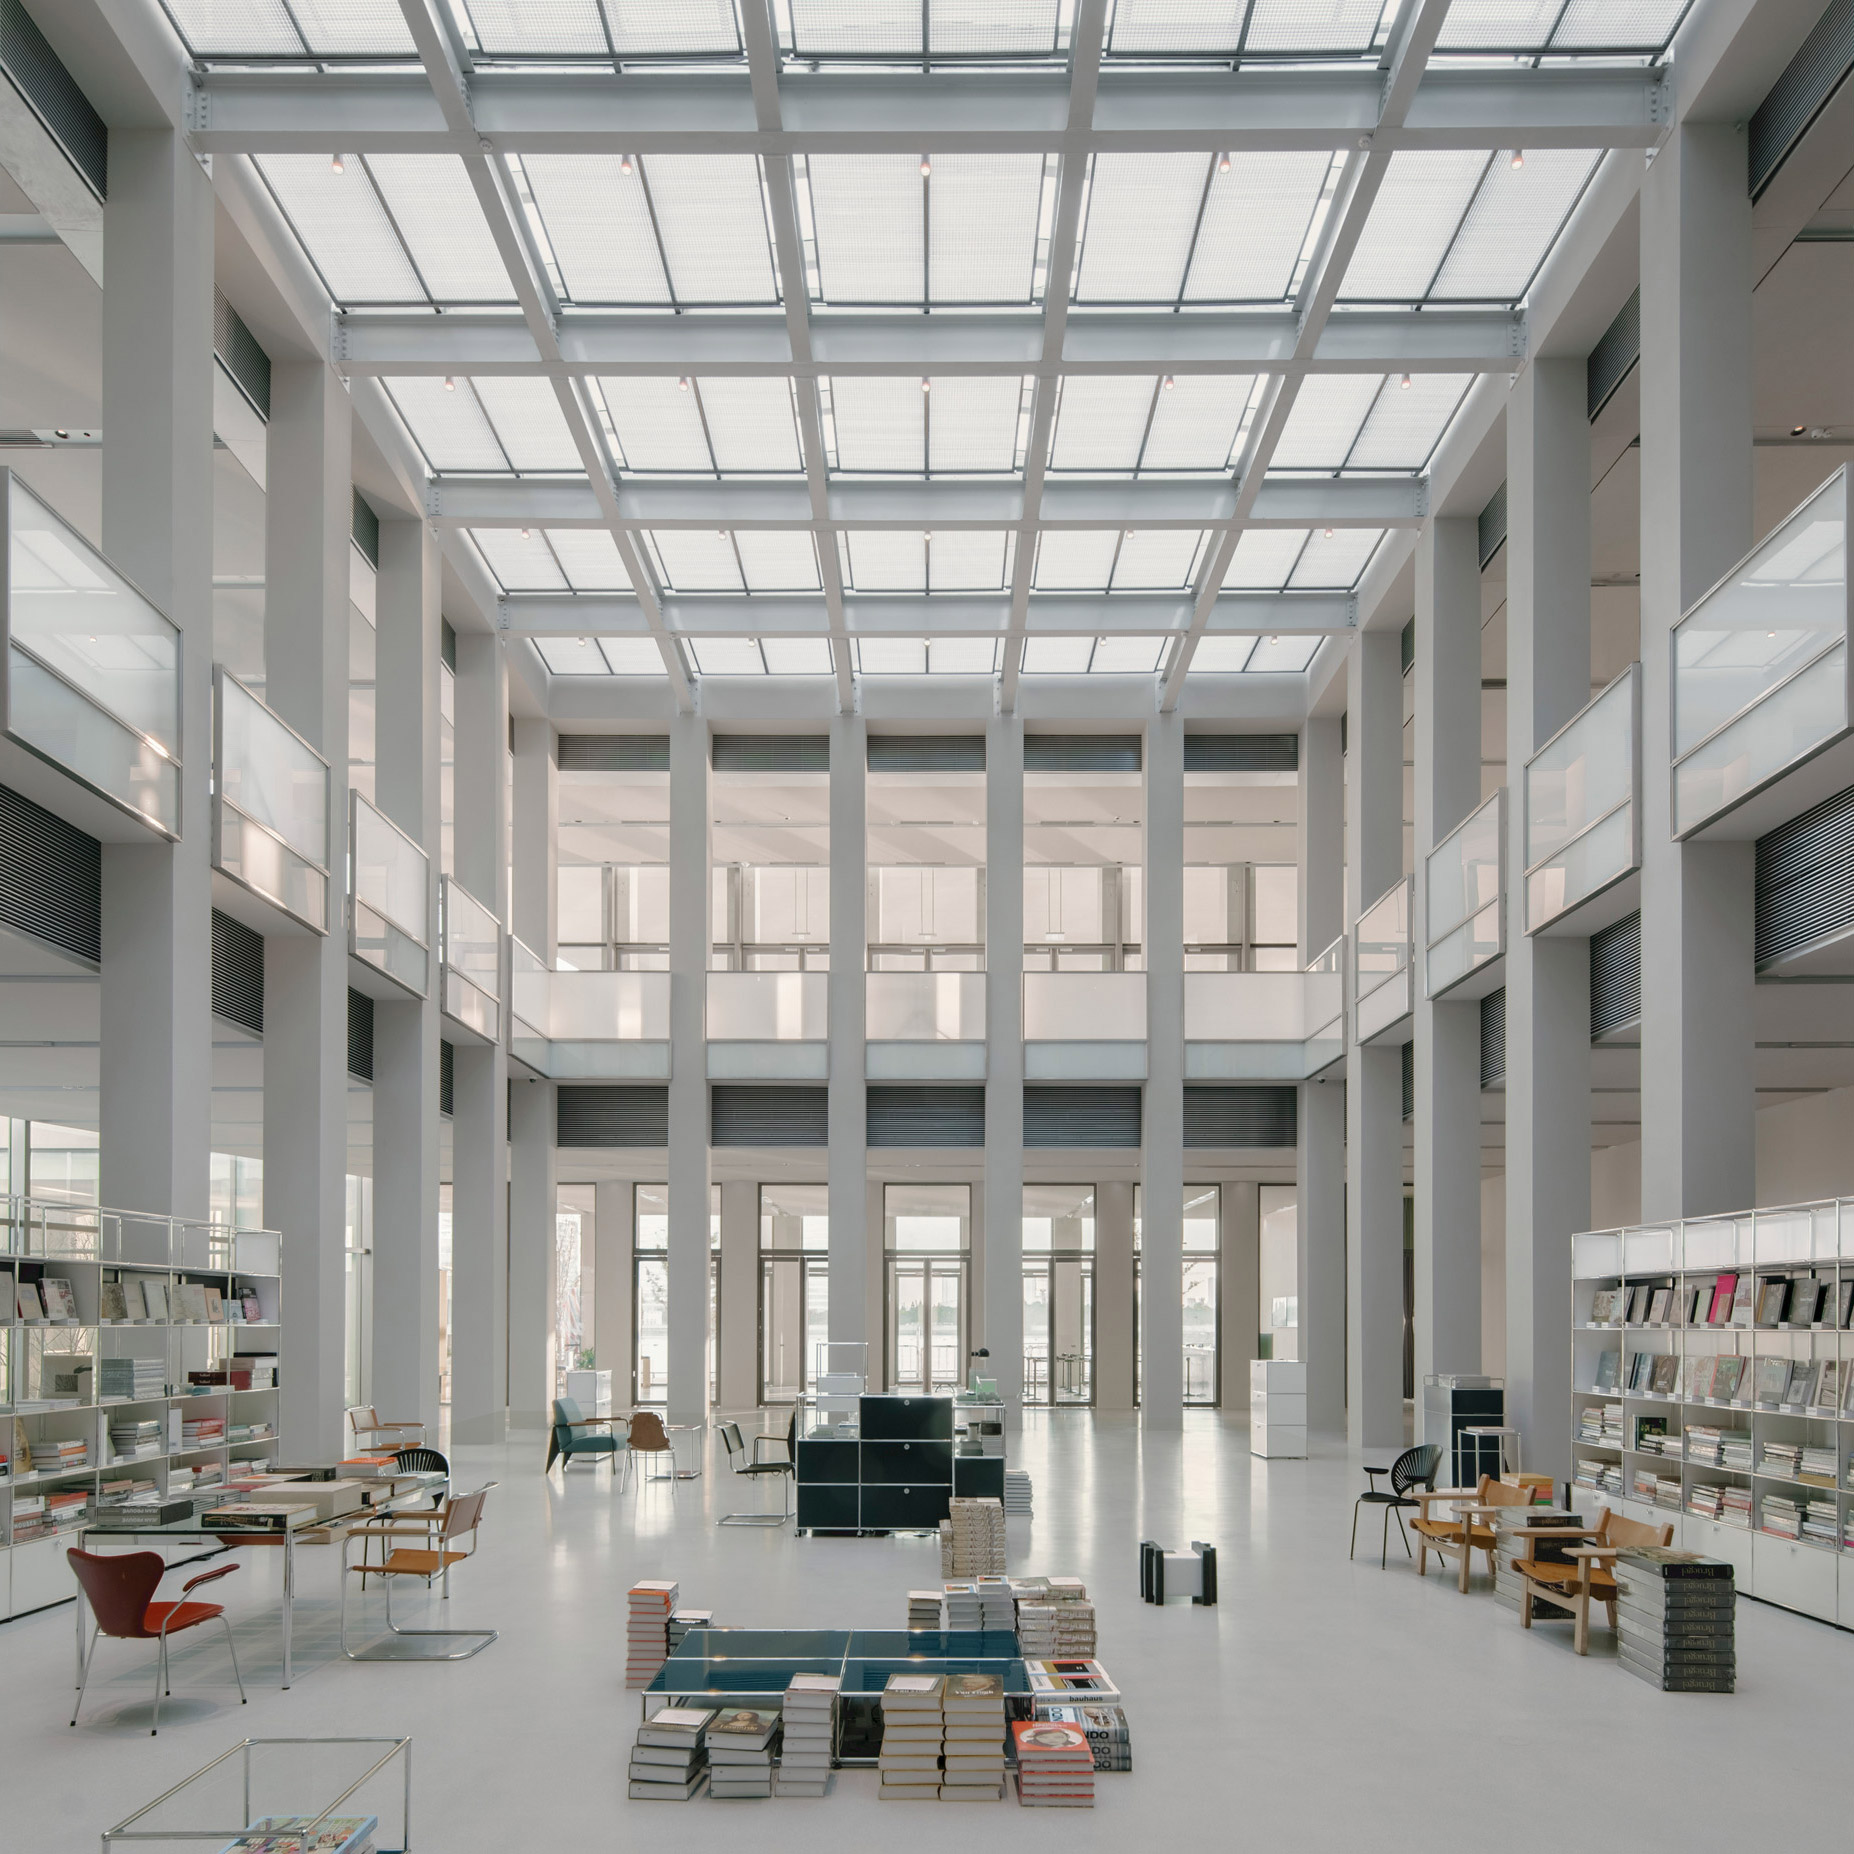 Dezeen's top 10 Chinese architecture projects of 2019: West Bund Museum, Shanghai, by David Chipperfield Architects